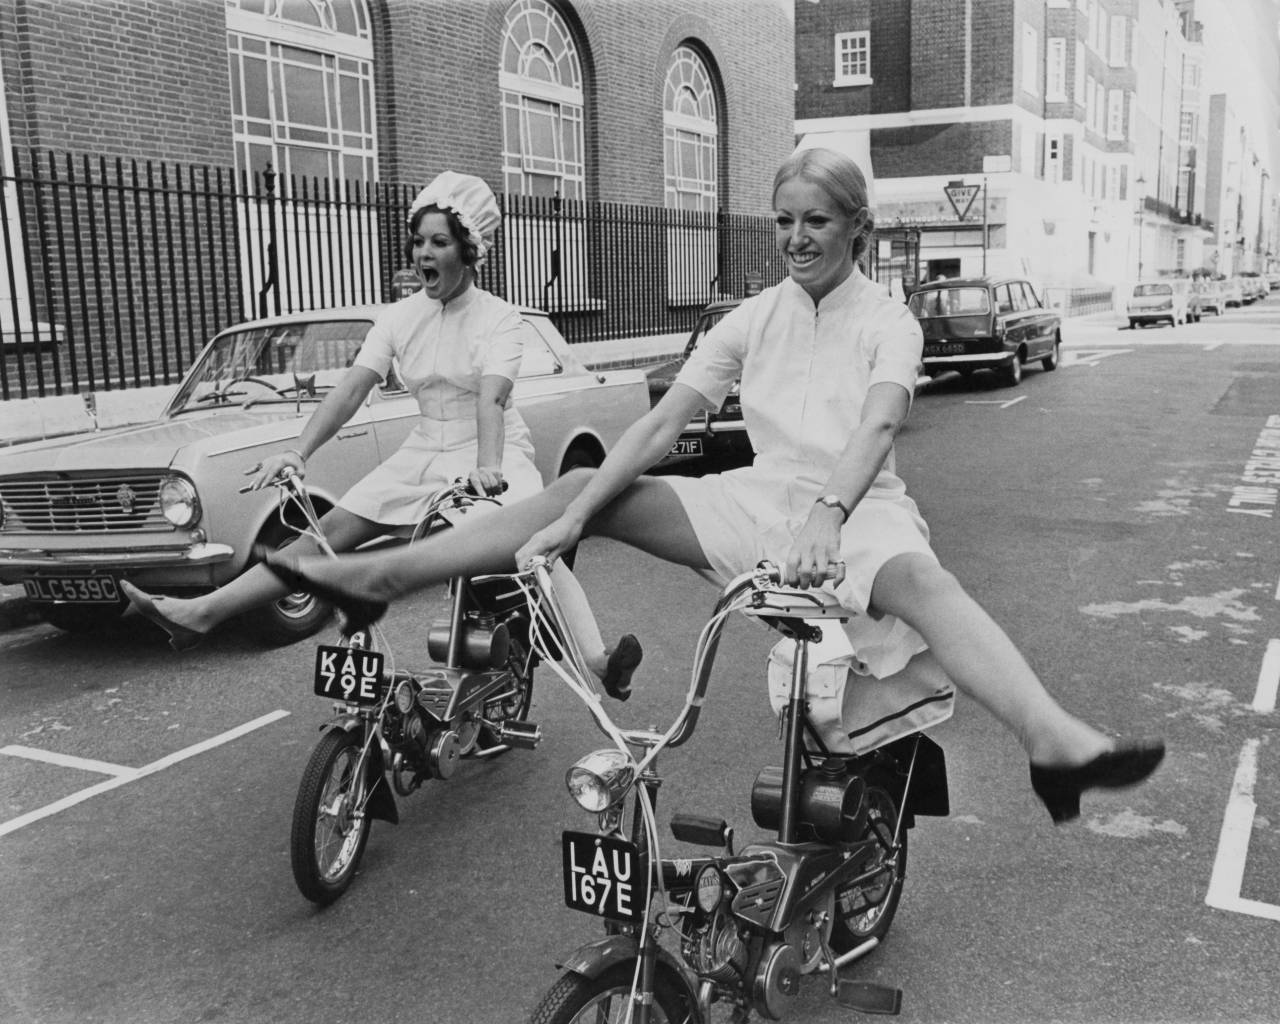 Models Glenda Warrington (left) and Caroline Whineray demonstrate the extra freedom and mobility afforded by the latest culotte dresses for nurses, 16th October 1967. The uniforms will be on show at the London Nursing Exhibition at Seymour Hall. October 16, 1967 (Photo by Keystone/Hulton Archive/Getty Images)